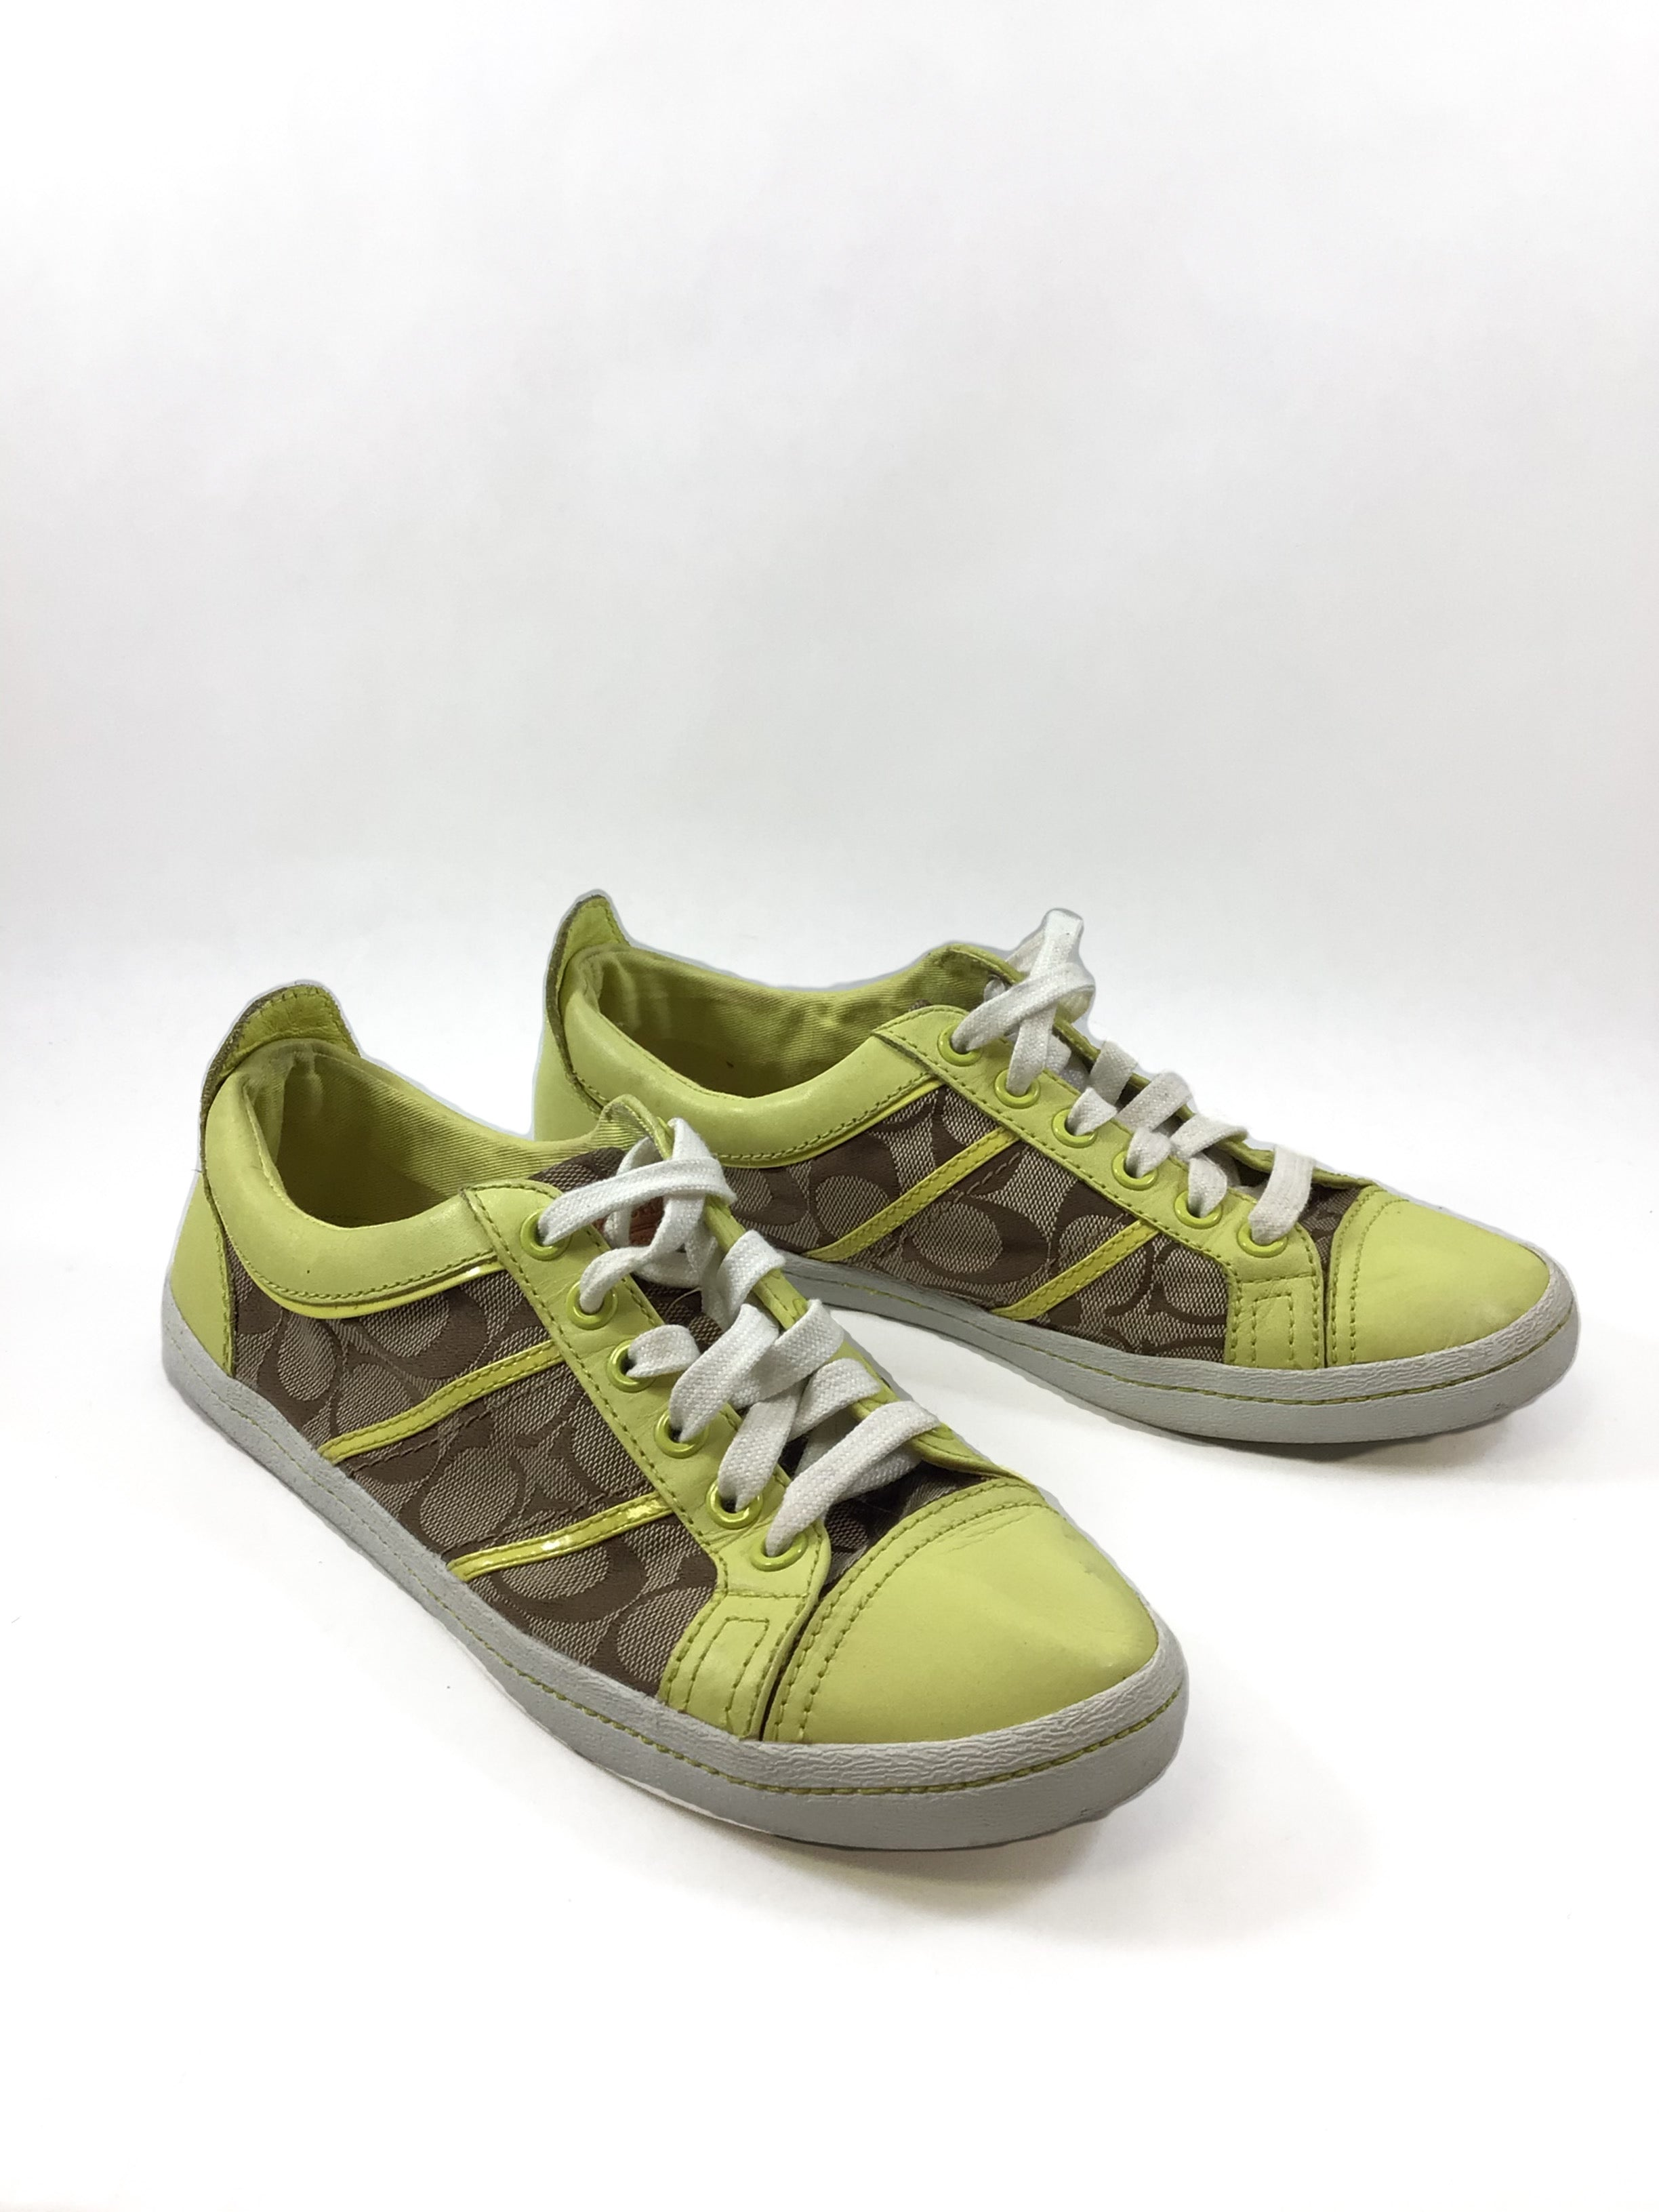 Primary Photo - BRAND: COACH O <BR>STYLE: SHOES FLATS <BR>COLOR: NEON <BR>SIZE: 8.5 <BR>SKU: 213-21394-42998